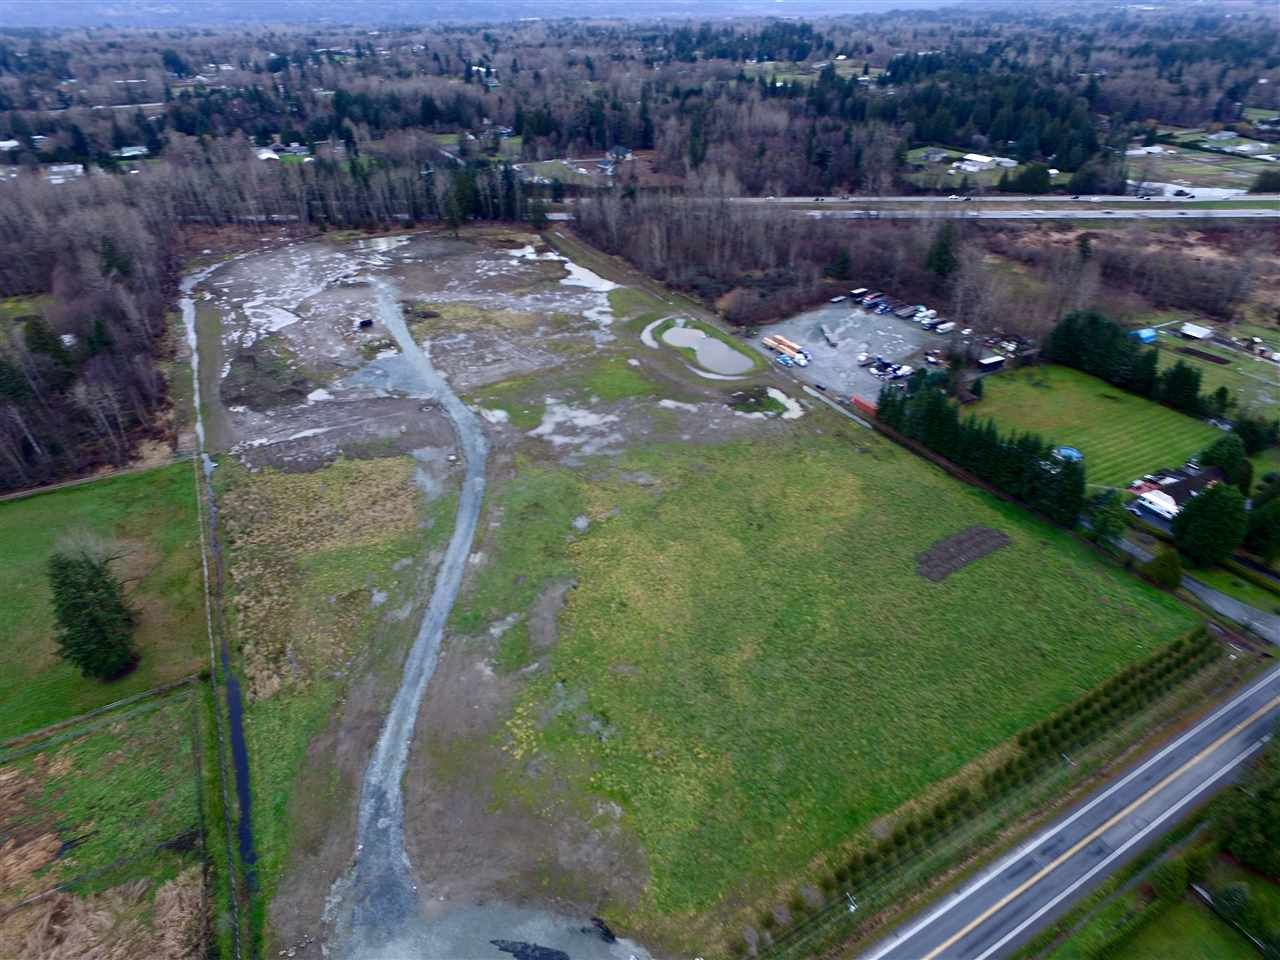 Main Photo: 25715 56 AVENUE in Langley: Salmon River Land for sale : MLS®# R2043978